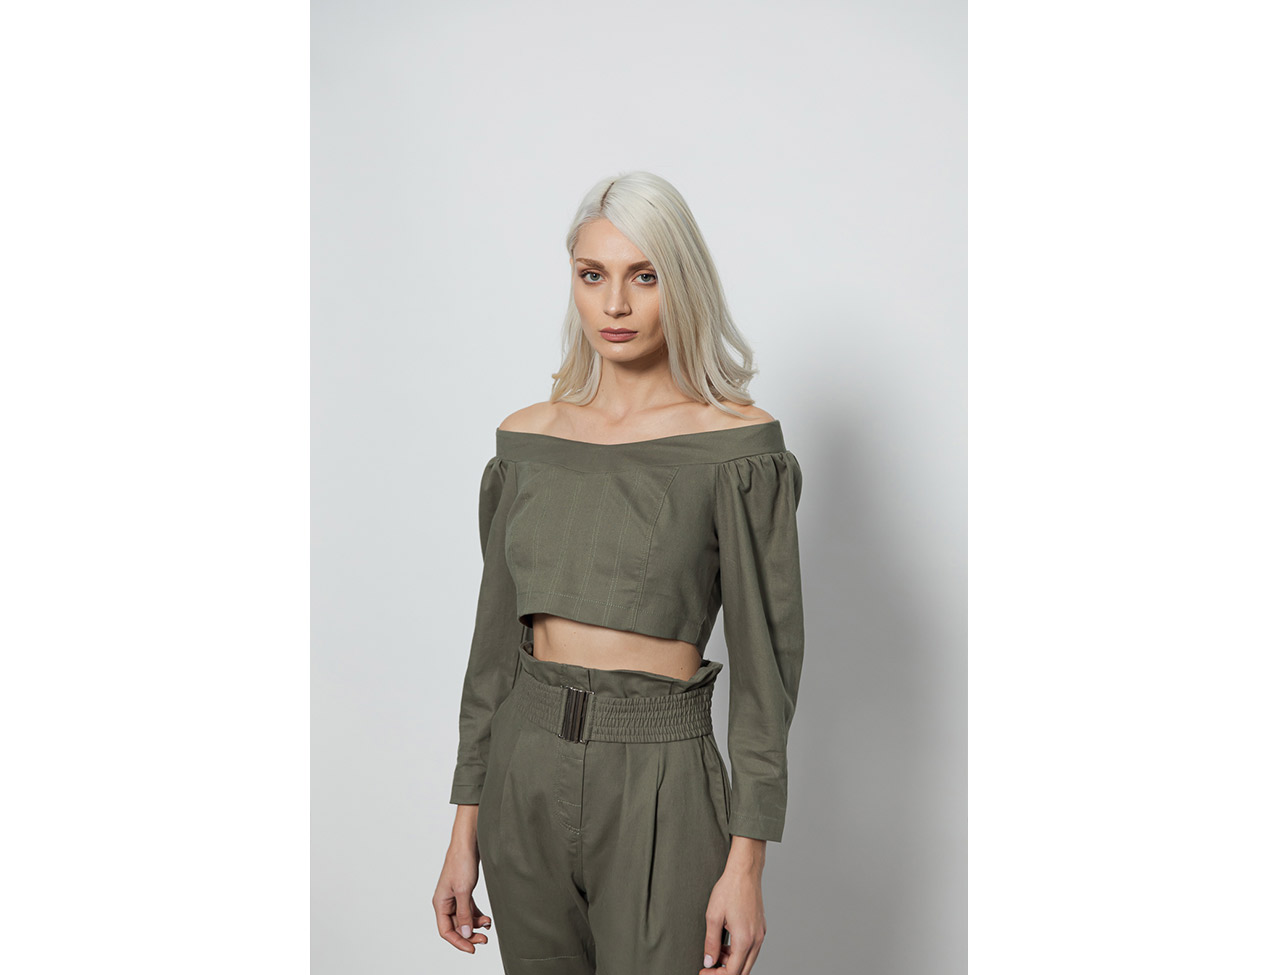 The Clavicle Crop Top-KHAKI - 4tailors